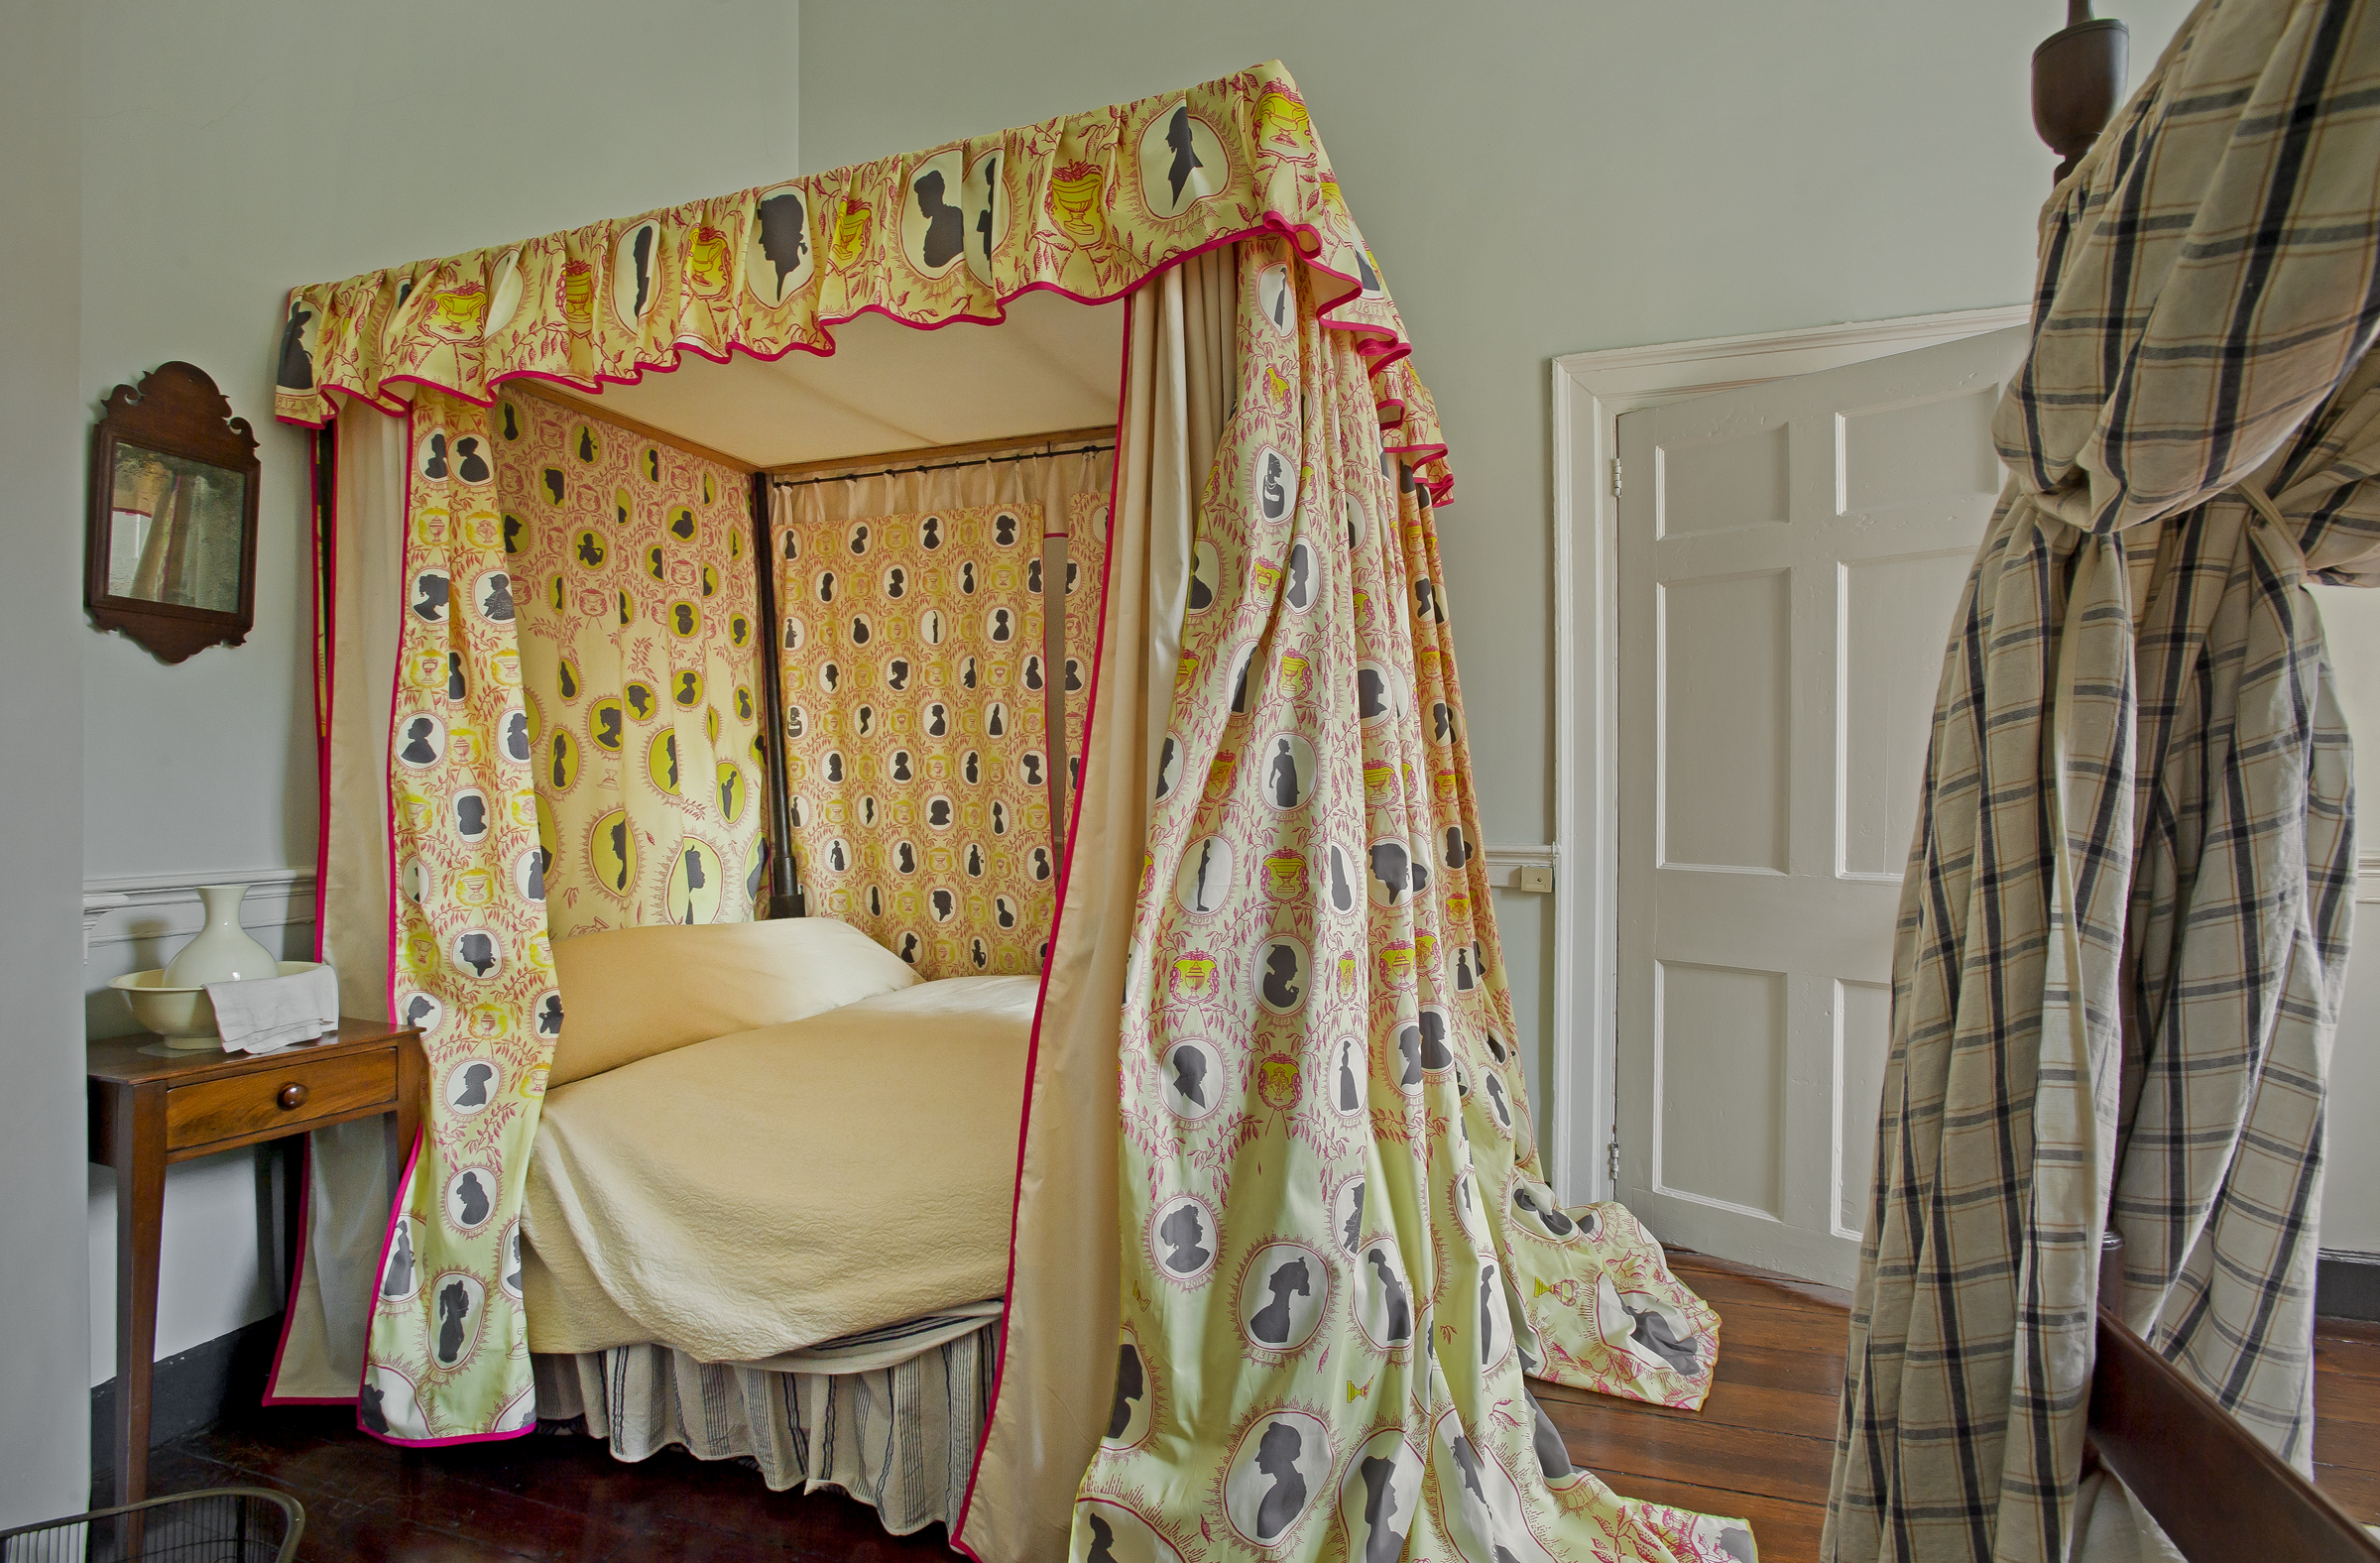 Not on View  Custom designed textile on historic canopy bed . Silhouettes derrived from unnamed historical women's images